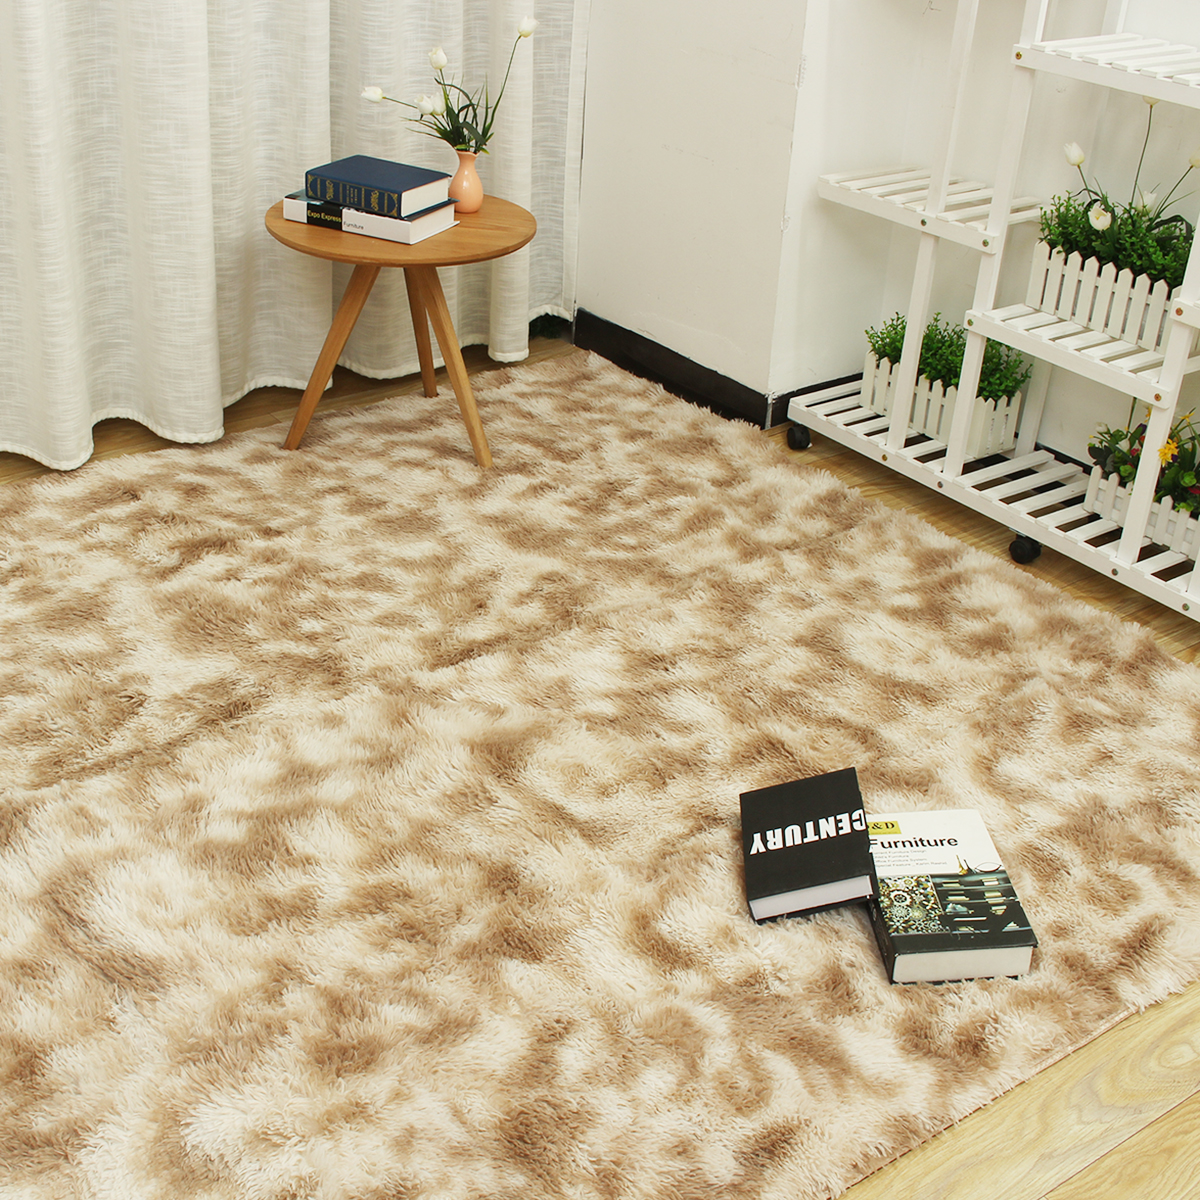 Upgraded Machine Washable Area Rugs For Living Room Ultra Luxurious Soft And Thick Faux Fur Shag Rug Non Slip Carpet For Bedroom Baby Room Nursery Decor Rug Available In Multi Size Color Walmart